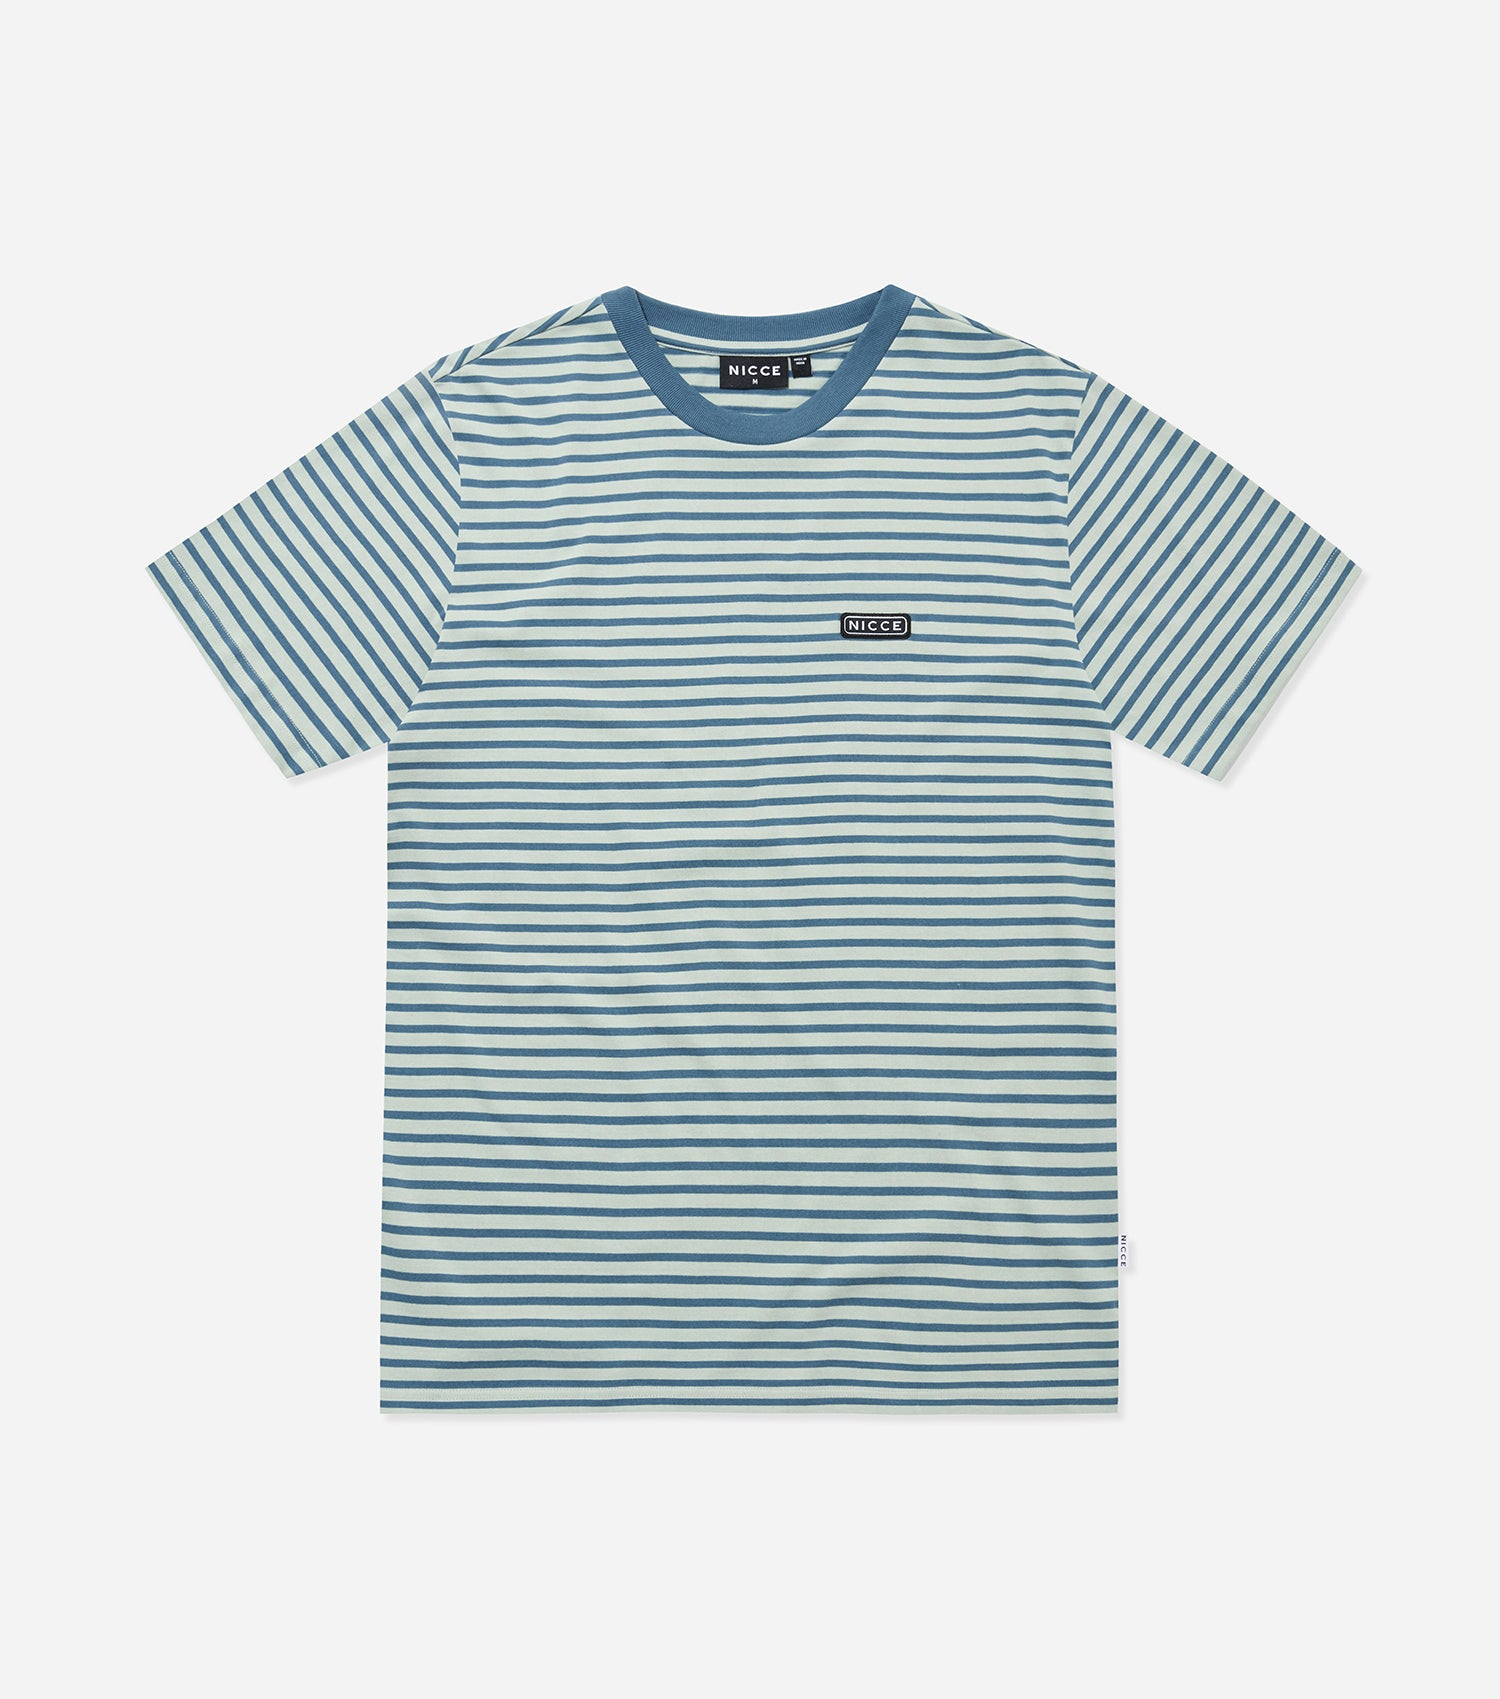 Nicce Mens Riva Stripe OS T-Shirt | Mint/Blue Mirage, T-Shirts